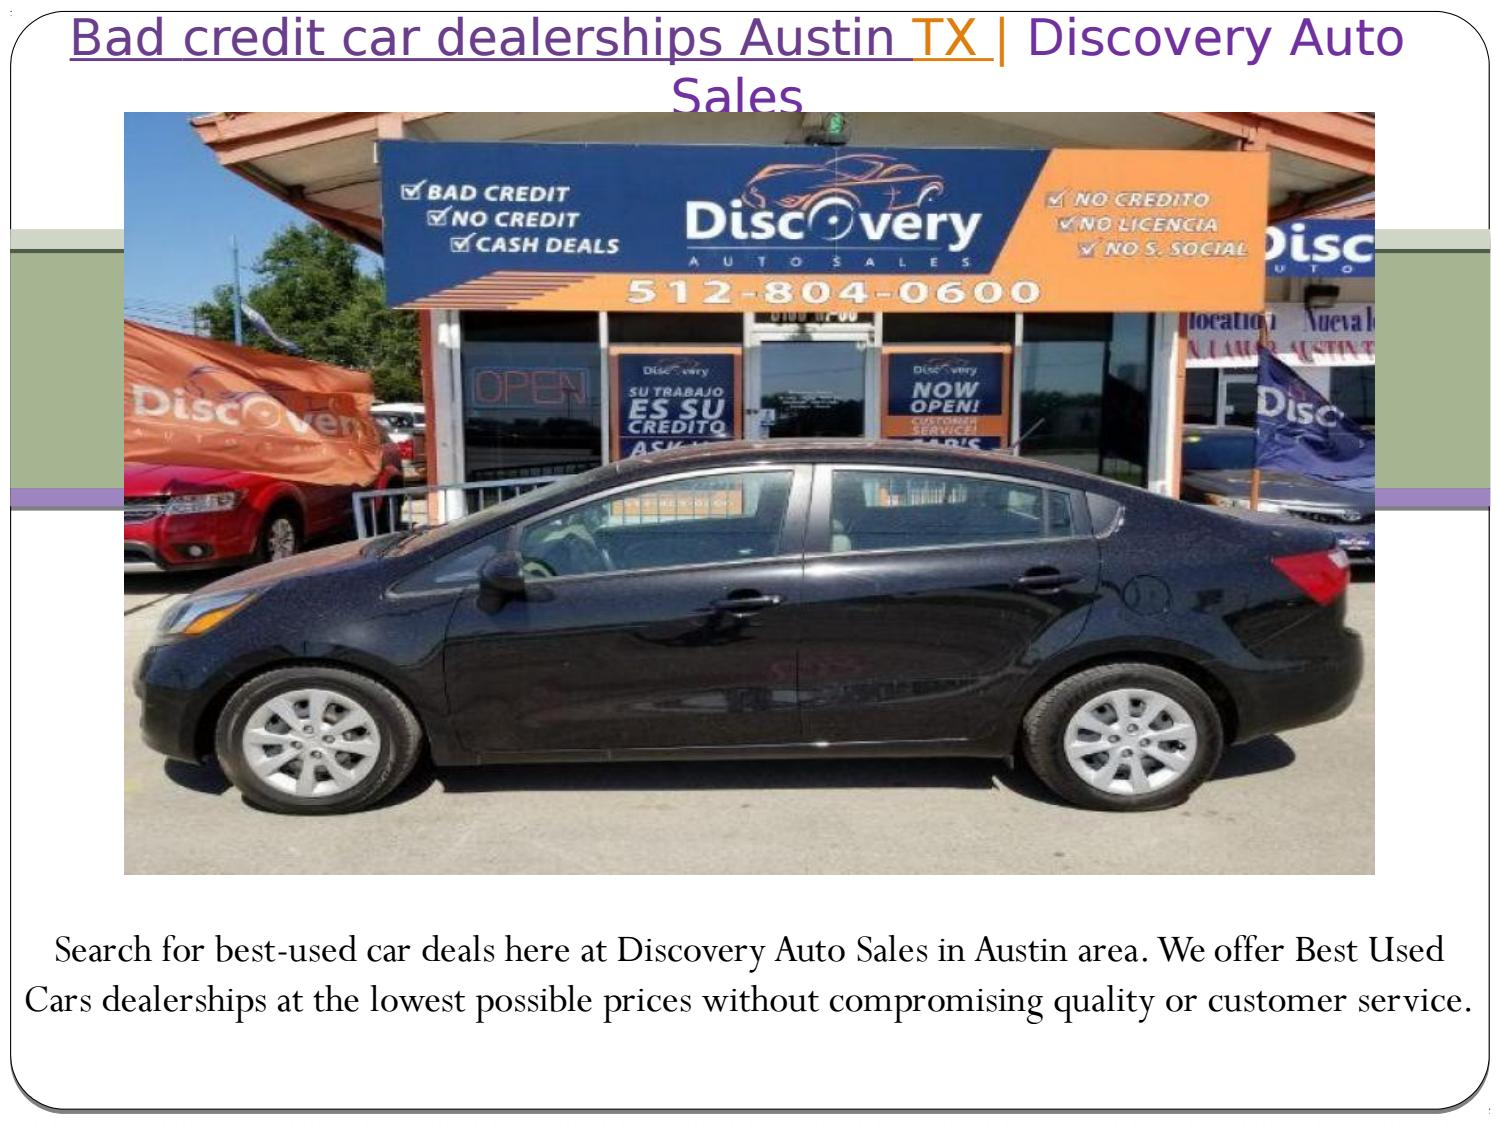 Bad Credit Car Dealerships Austin Tx By Discovery Auto Sales Issuu